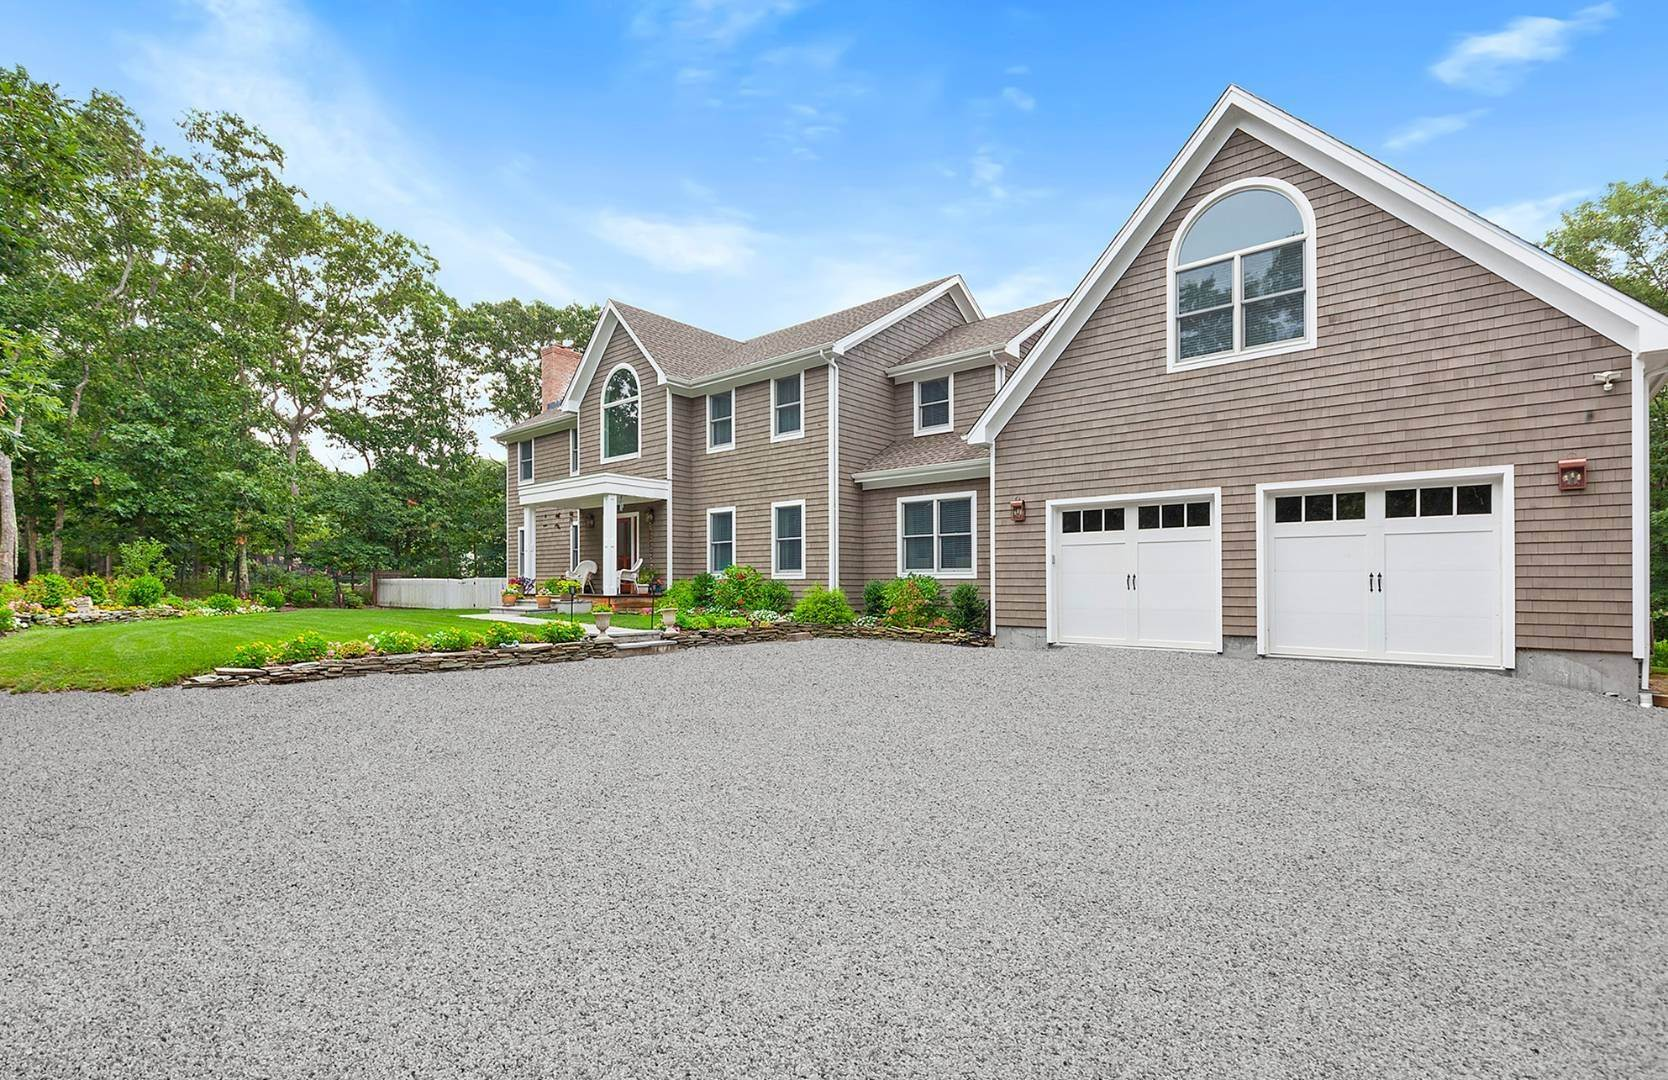 Single Family Home for Sale at Luxury And Privacy In Southampton 12 Deer Trail Rd, Southampton, NY 11968